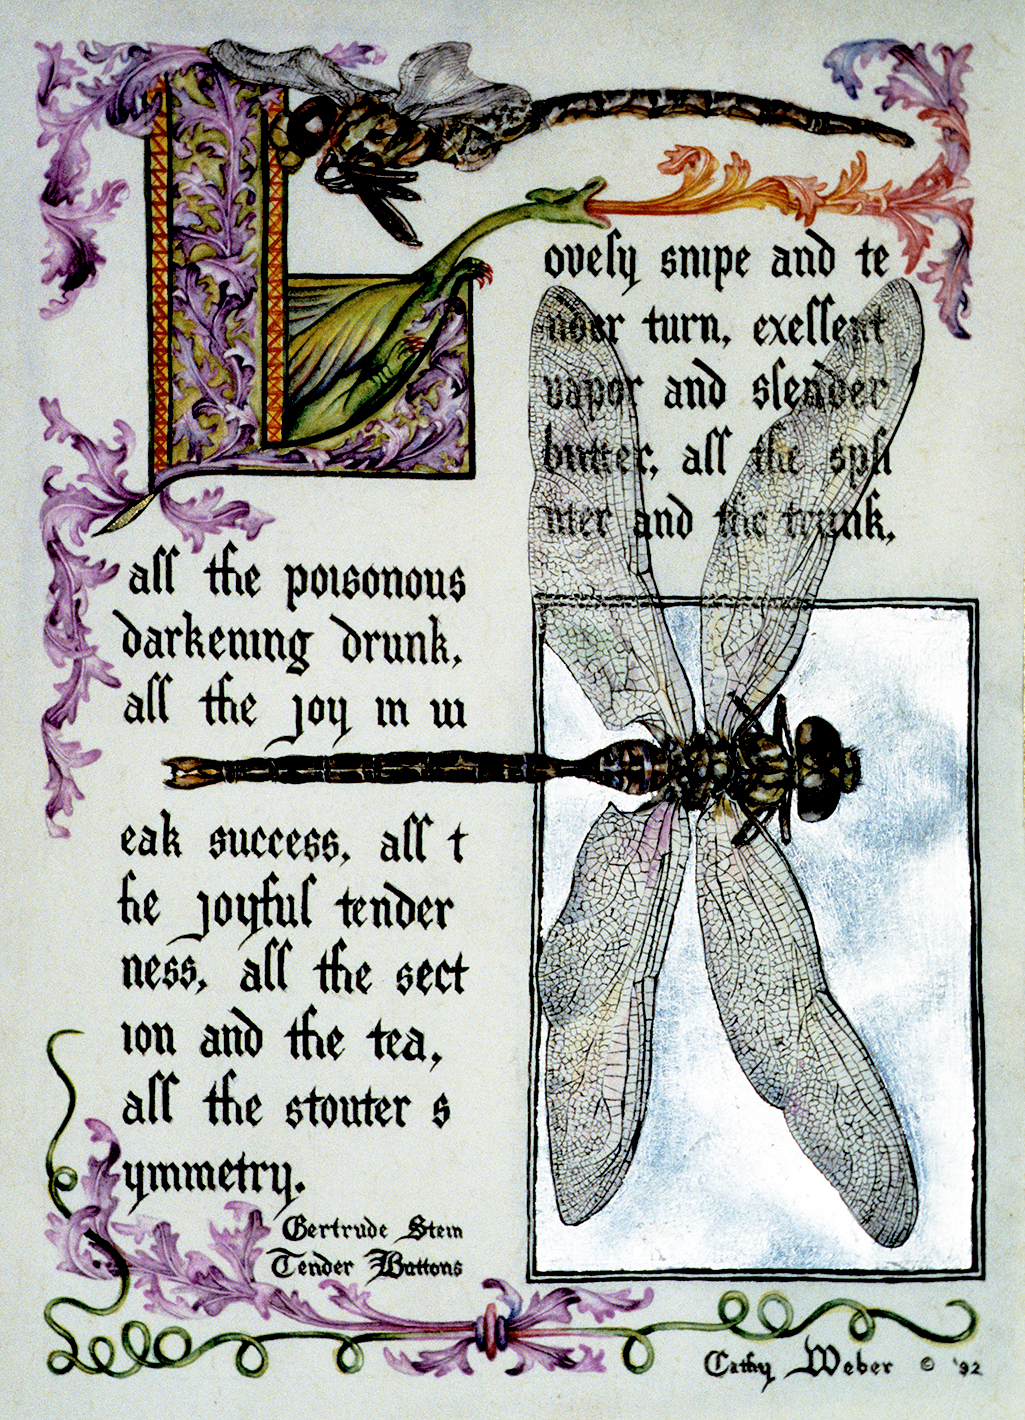 cathy weber - art - painting - woman -dragonfly - watercolor -illumination- montana - painting - parchment - skin - versal - gertrude stein